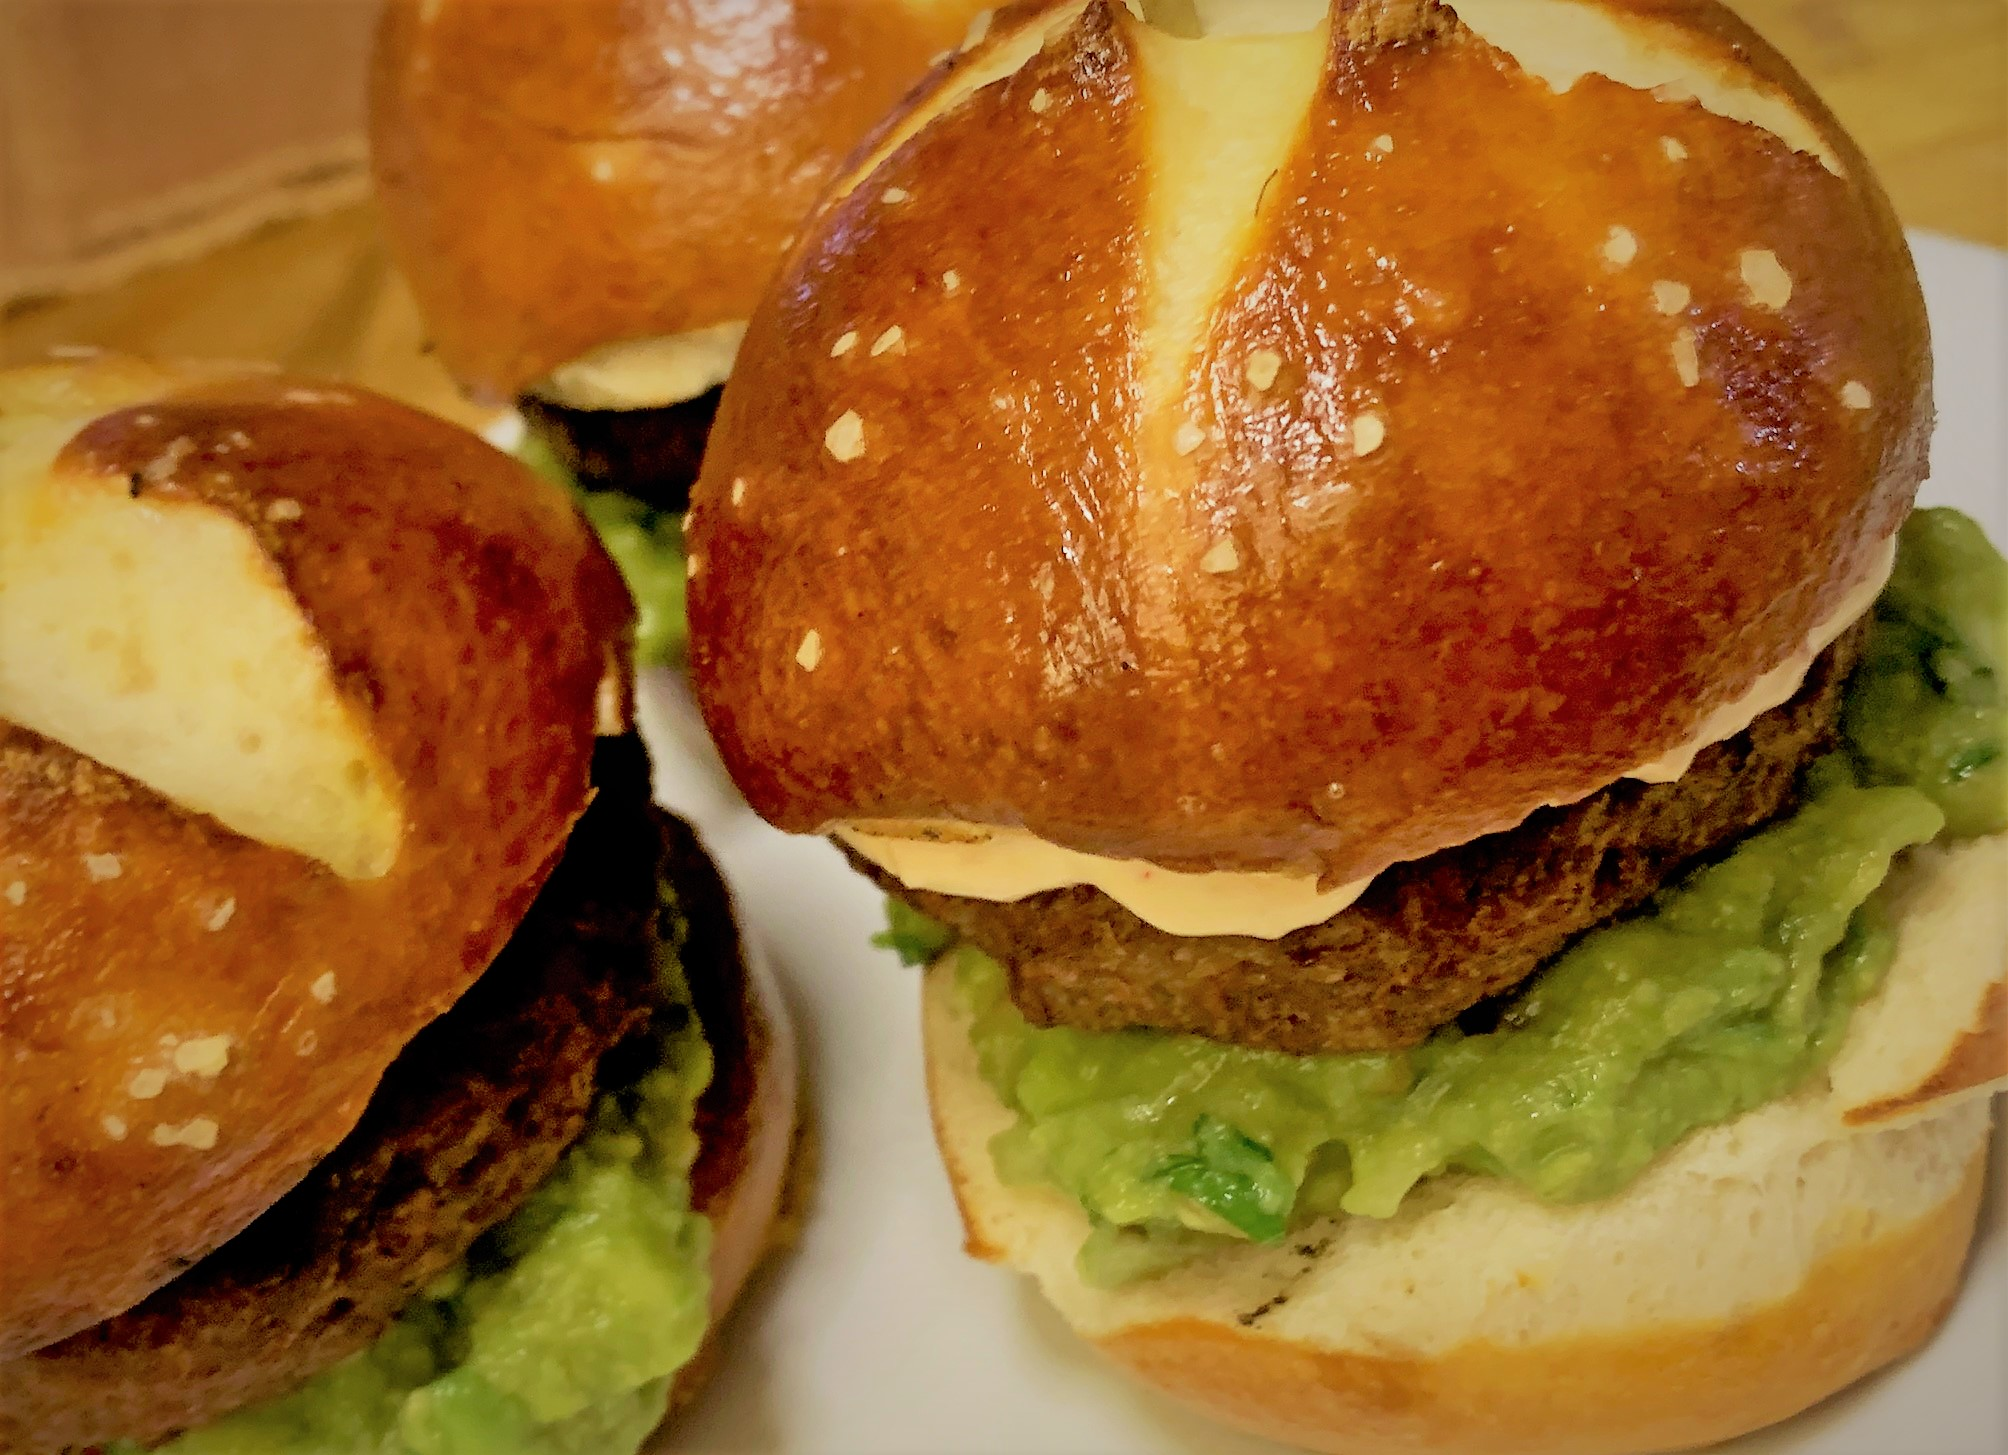 Our Pretzel Slider Rolls used in the Petite Plant Based Burger with Guacamole